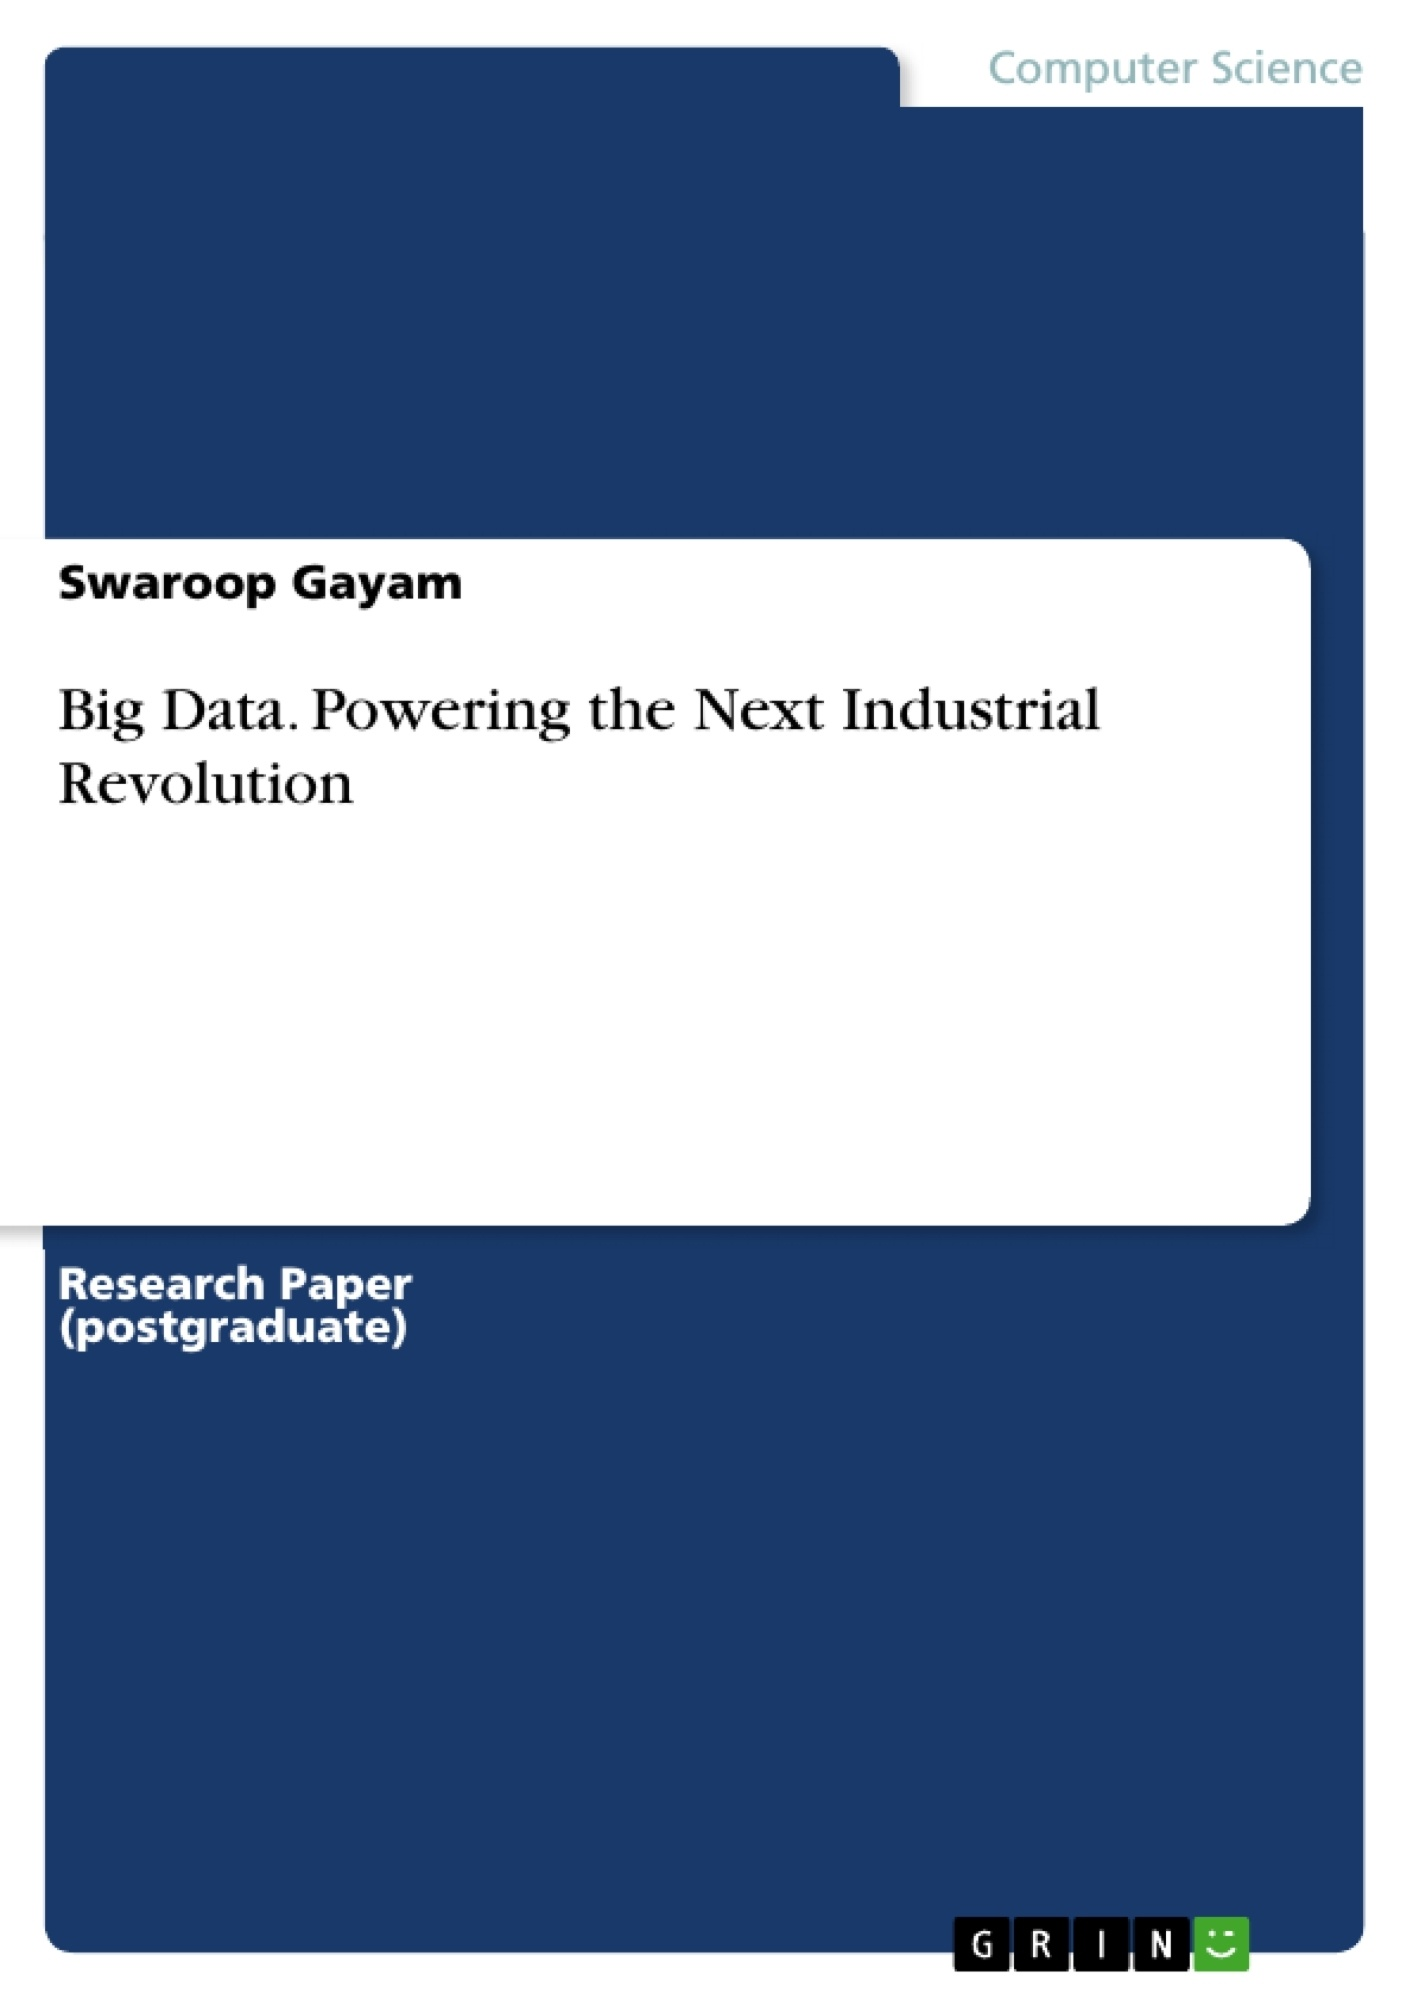 Title: Big Data. Powering the Next Industrial Revolution